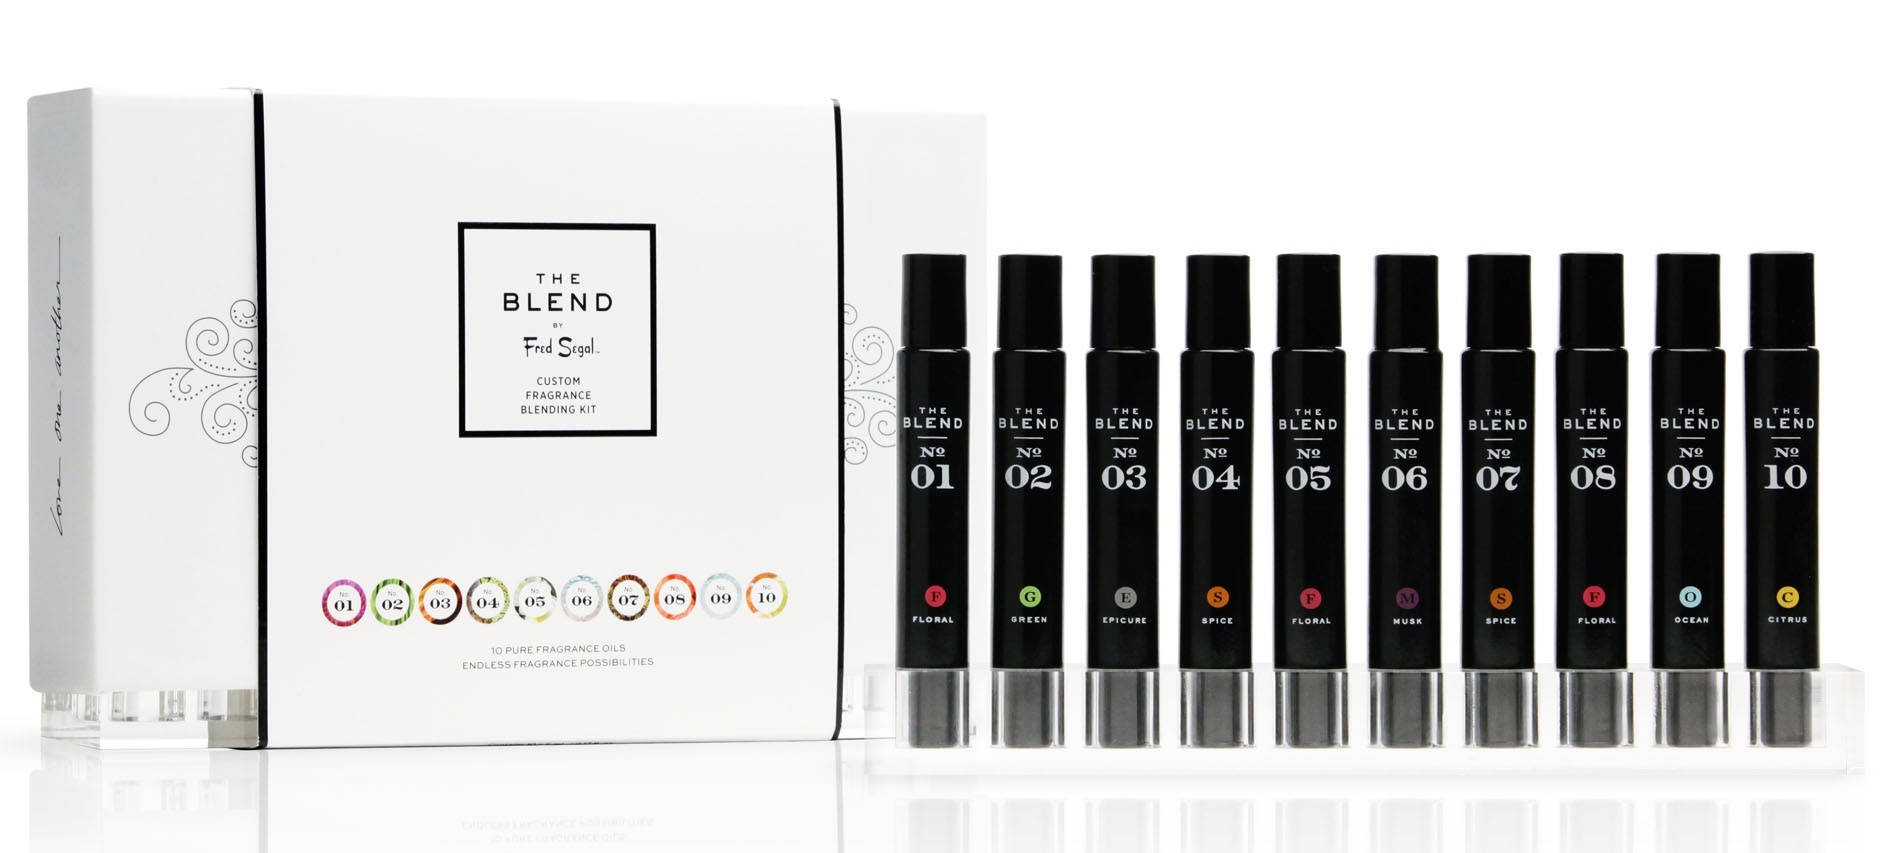 Create Your Own Custom Scent with Fred Segal's DIY Fragrance Kit